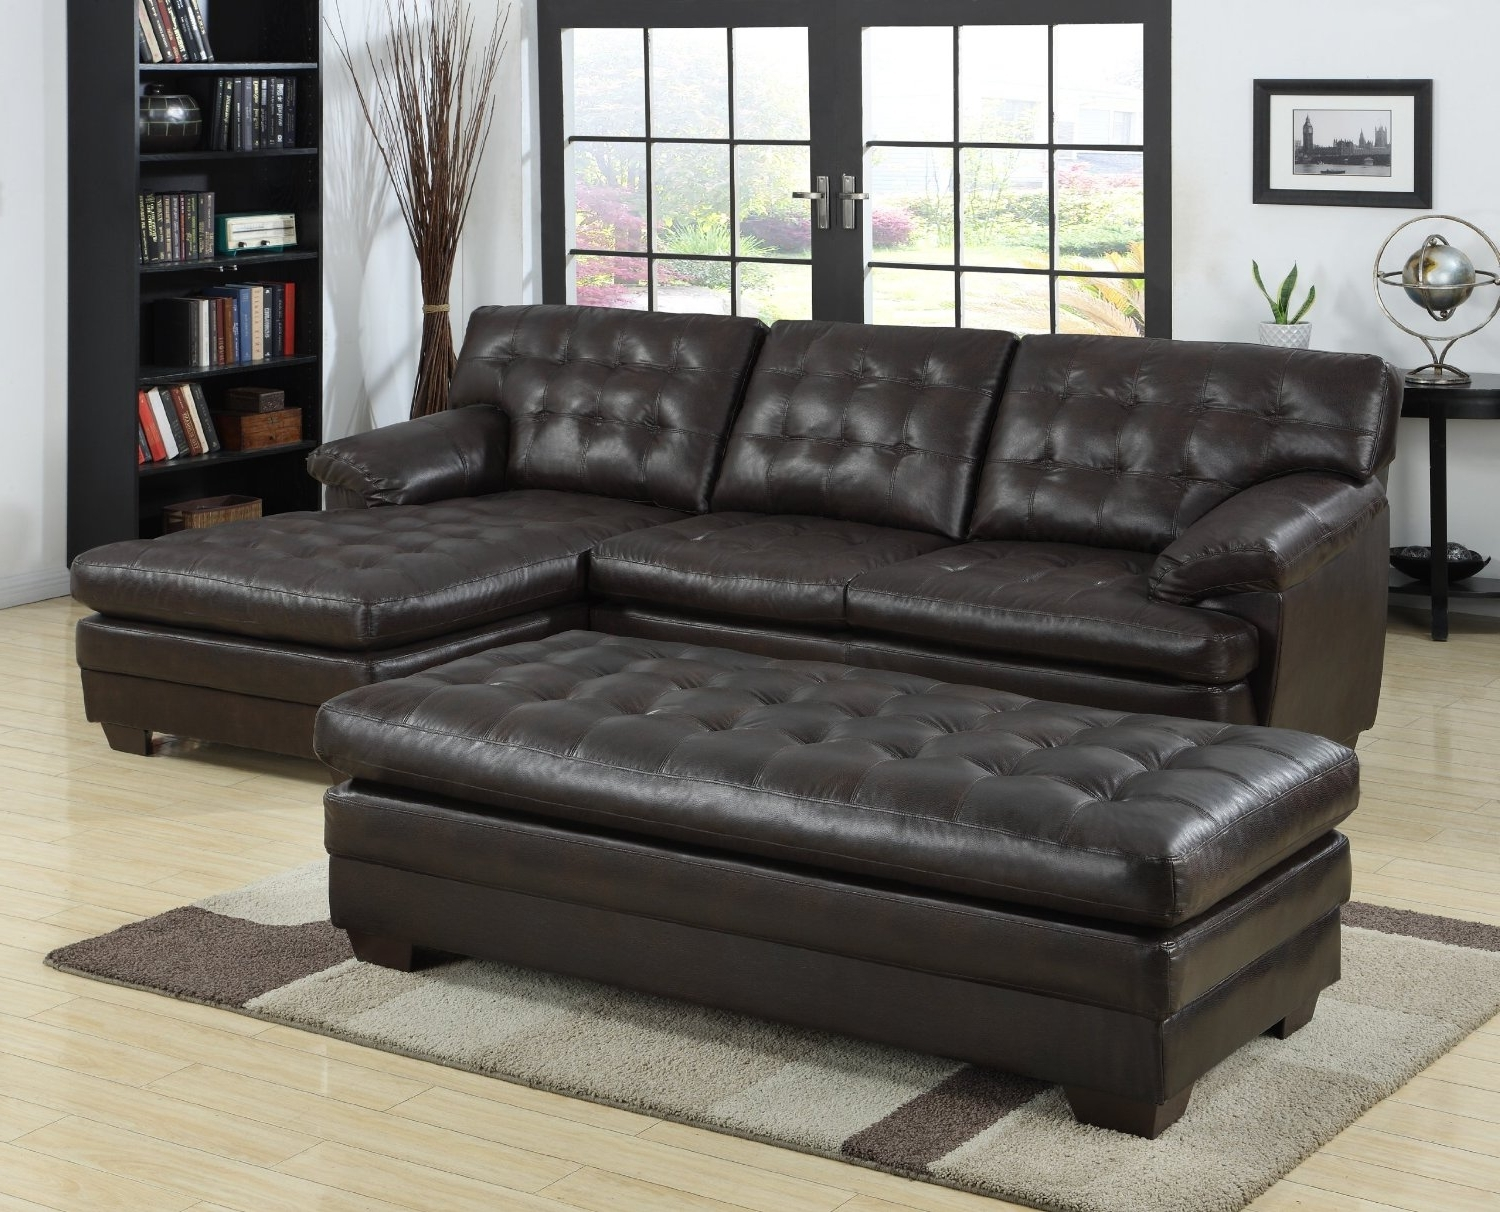 Black Tufted Leather Sectional Sofa With Chaise And Bench Seat Inside Current Black Leather Sectionals With Chaise (View 7 of 15)